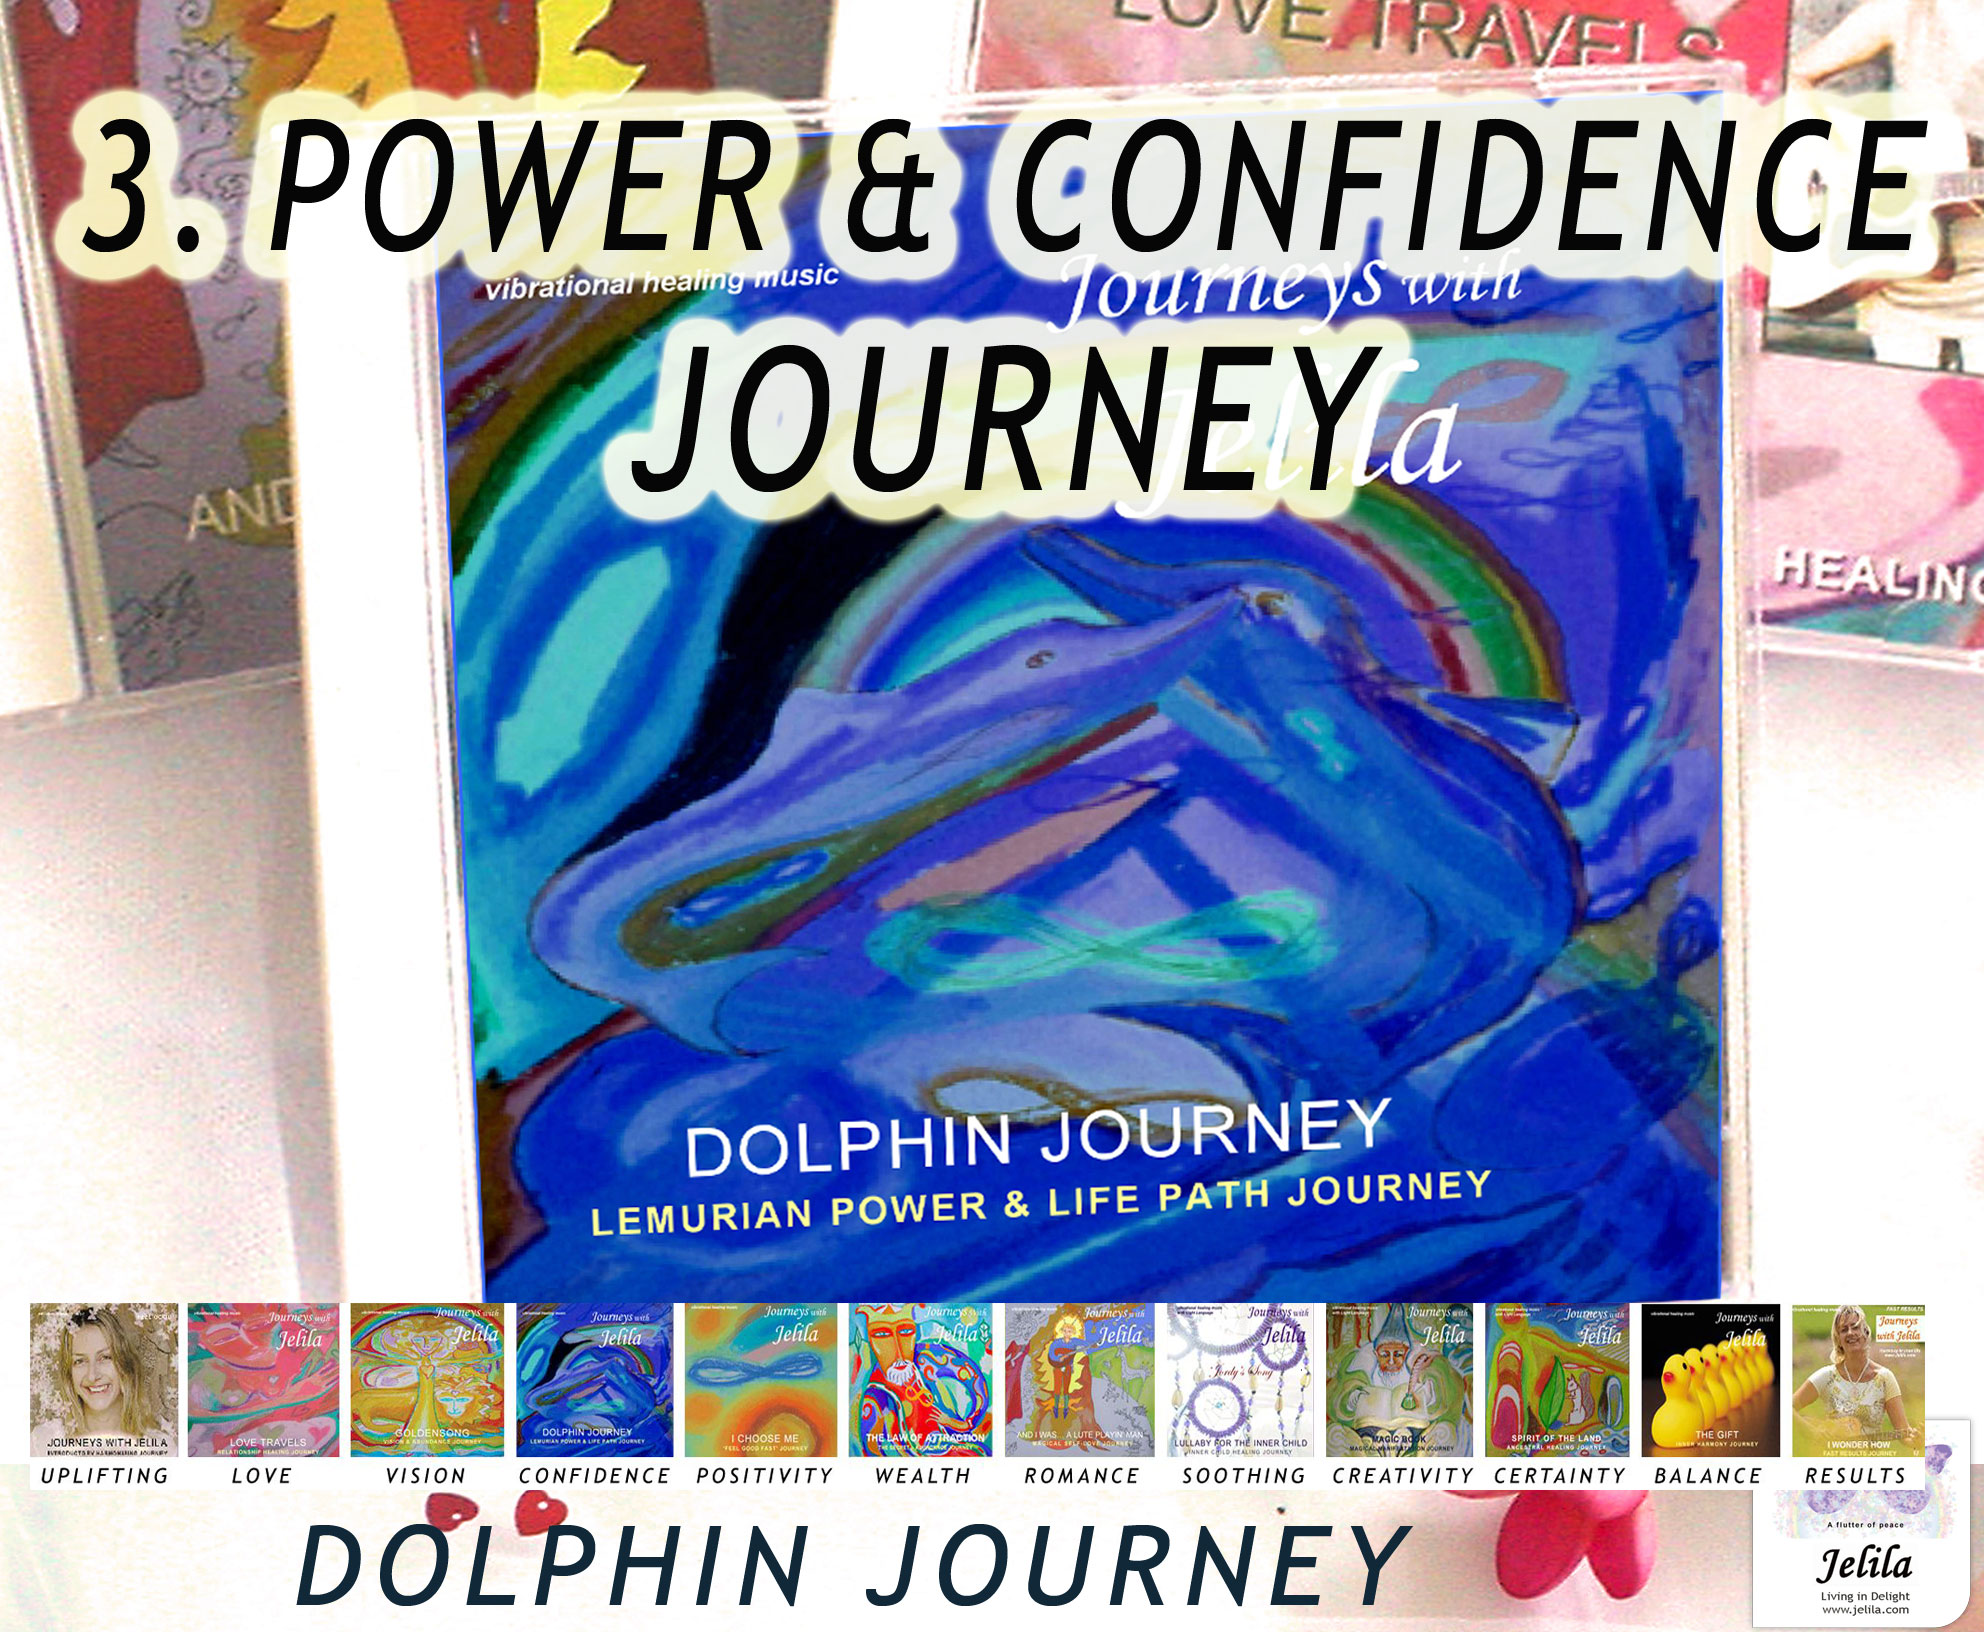 Power & Confidence Journey - Jelila Vibrational Healing Music - www.jelila.com